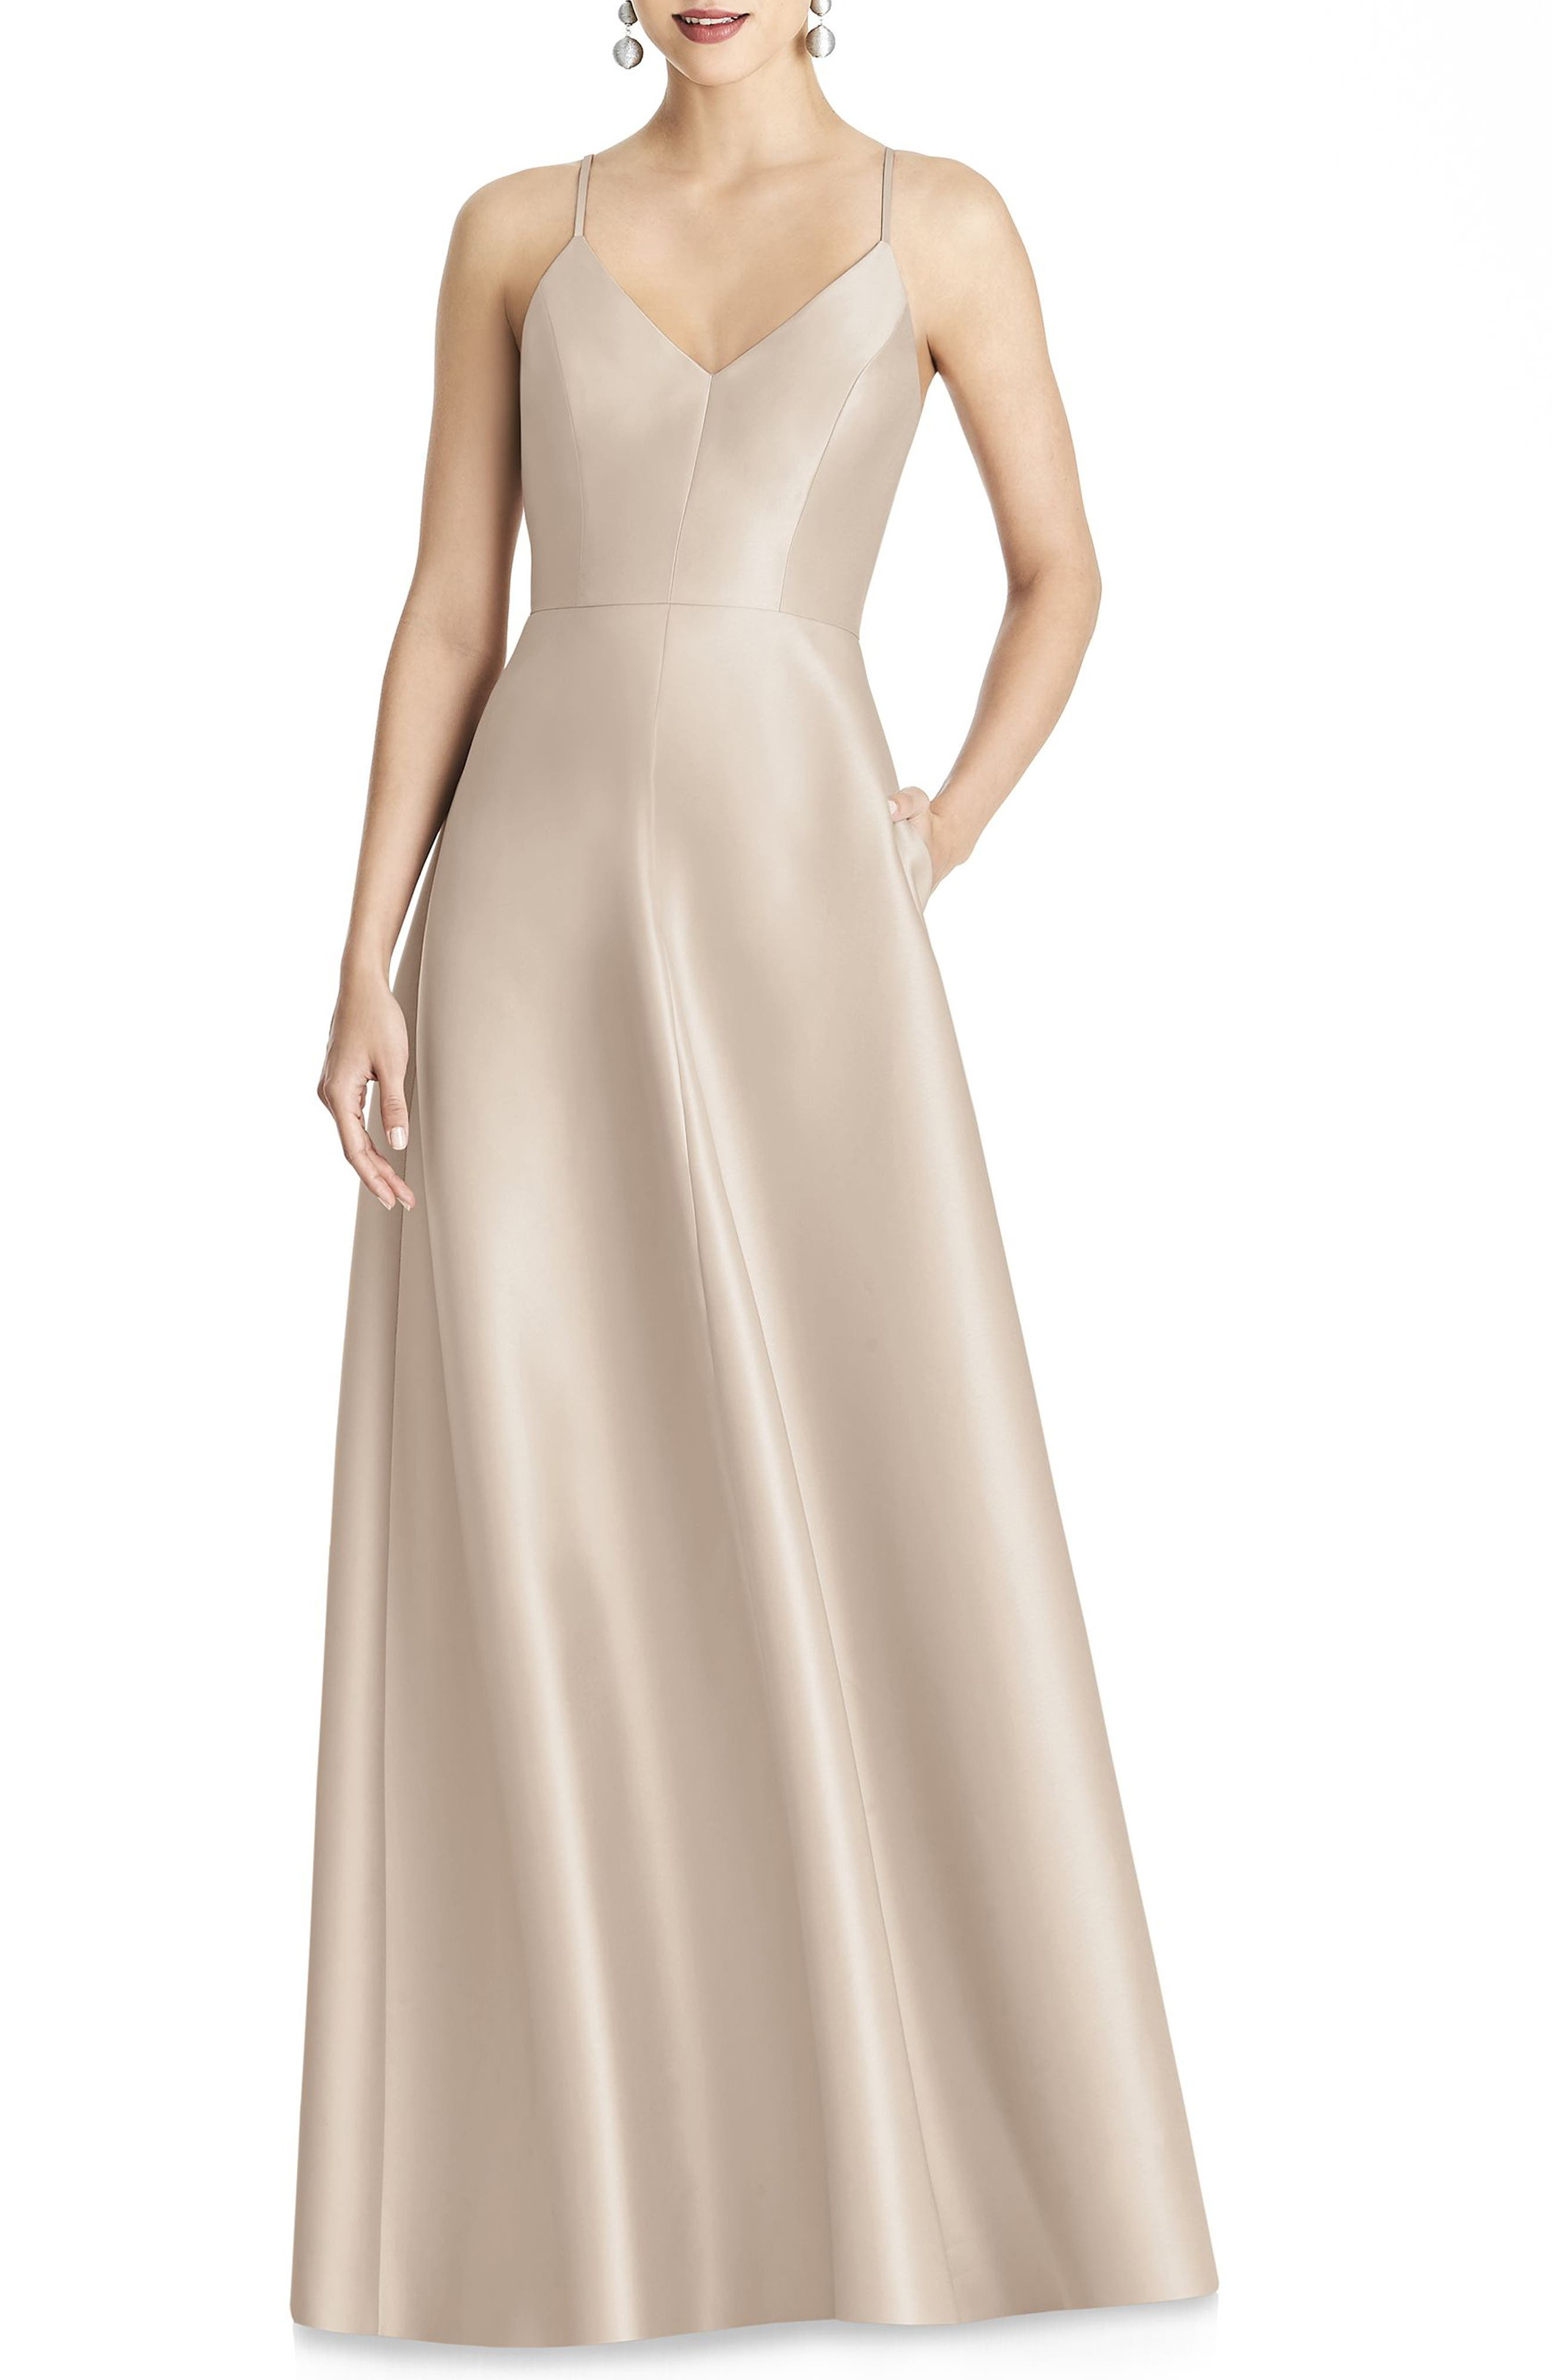 Alternate Image 1 Selected - Alfred Sung Strappy Sateen A-Line Gown